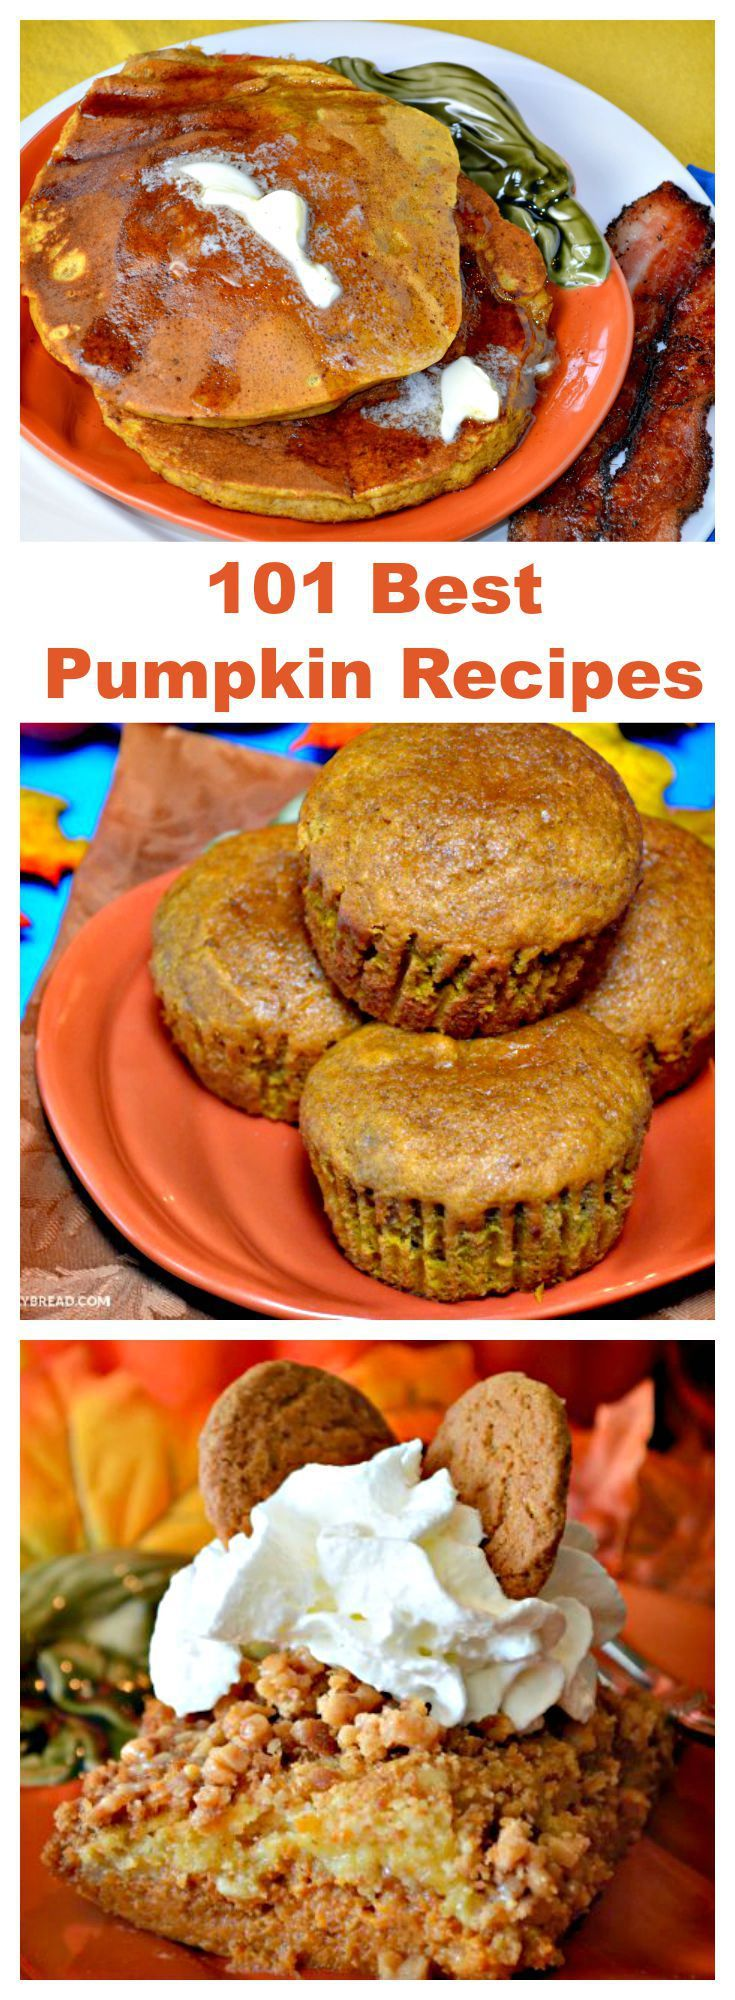 101 Best #Pumpkin #Recipes  - Are you ready for #fall?  If not, you can get ready with 101 pumpkin recipes plus pumpkin carving and non carving ideas.  I even added some pumpkin crafts.  If you love fall, this post is for you.